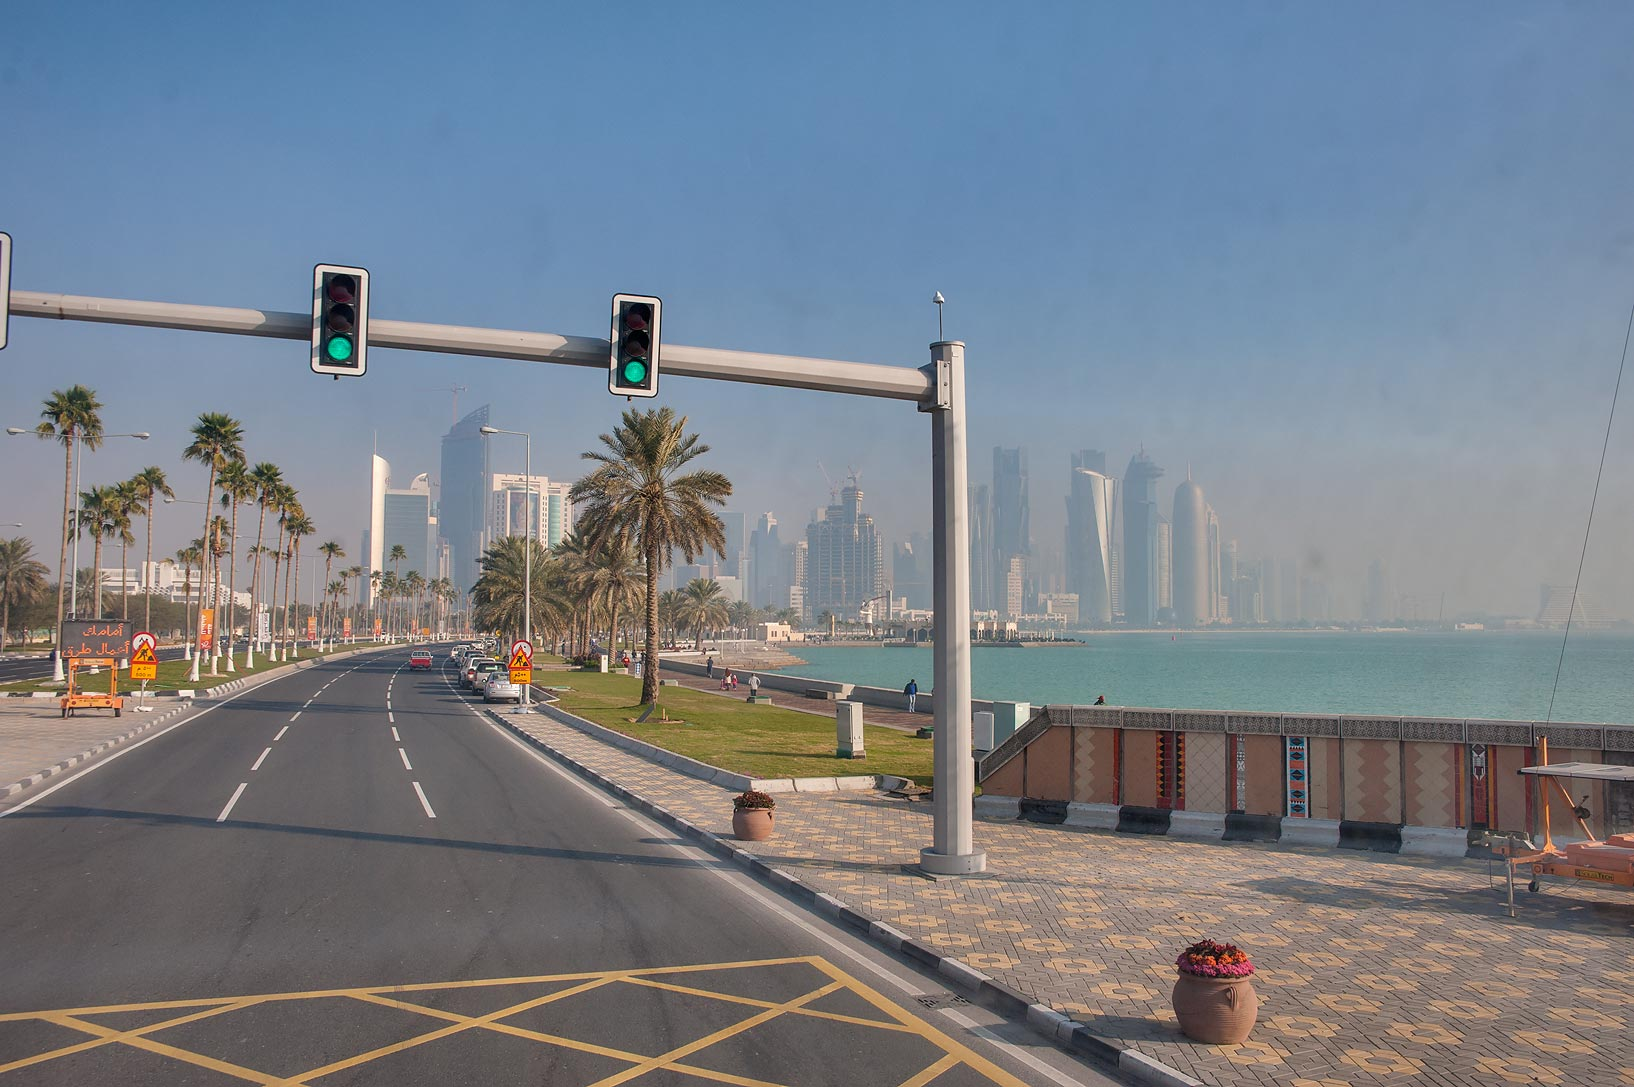 Corniche promenade, view from a window of a bus No. 76. Doha, Qatar